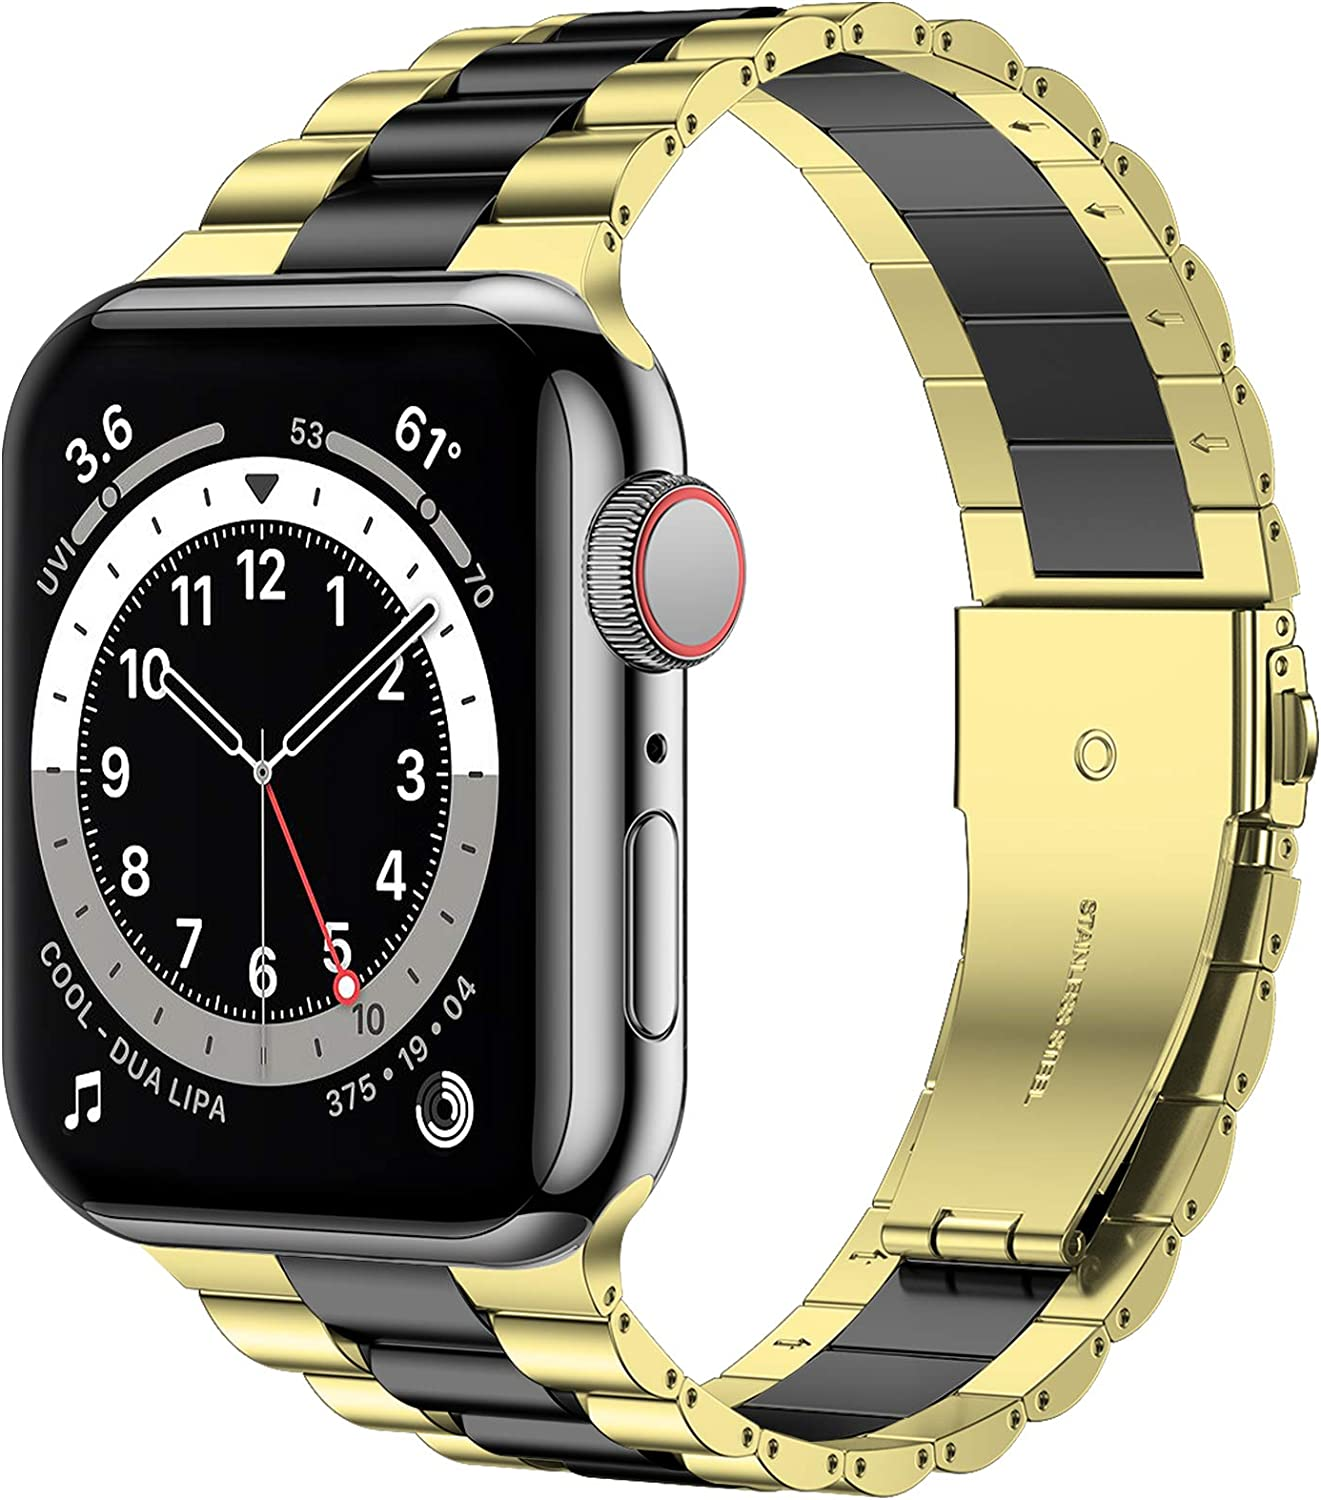 iiteeology Compatible with Apple Watch Band 44mm 42mm, Resin Stainless Steel Metal Link Wristbands for iWatch SE Series 6 5 4 3 2 1 - Gold+Black